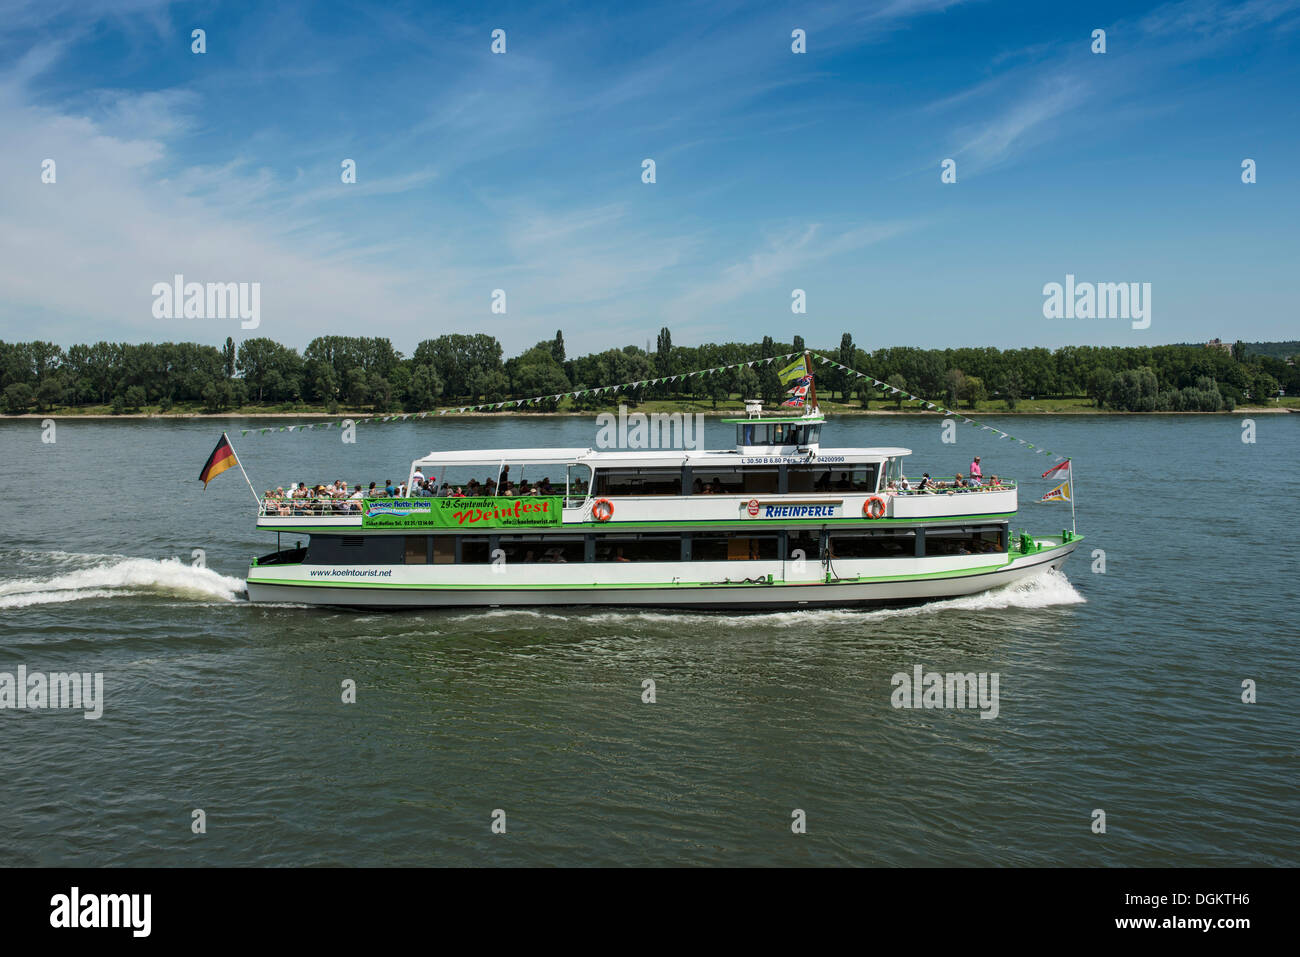 Rheinperle, a crowded excursion boat of the Koelntourist Personenschiffahrt am Dom GmbH shipping company traveling on the Rhine - Stock Image